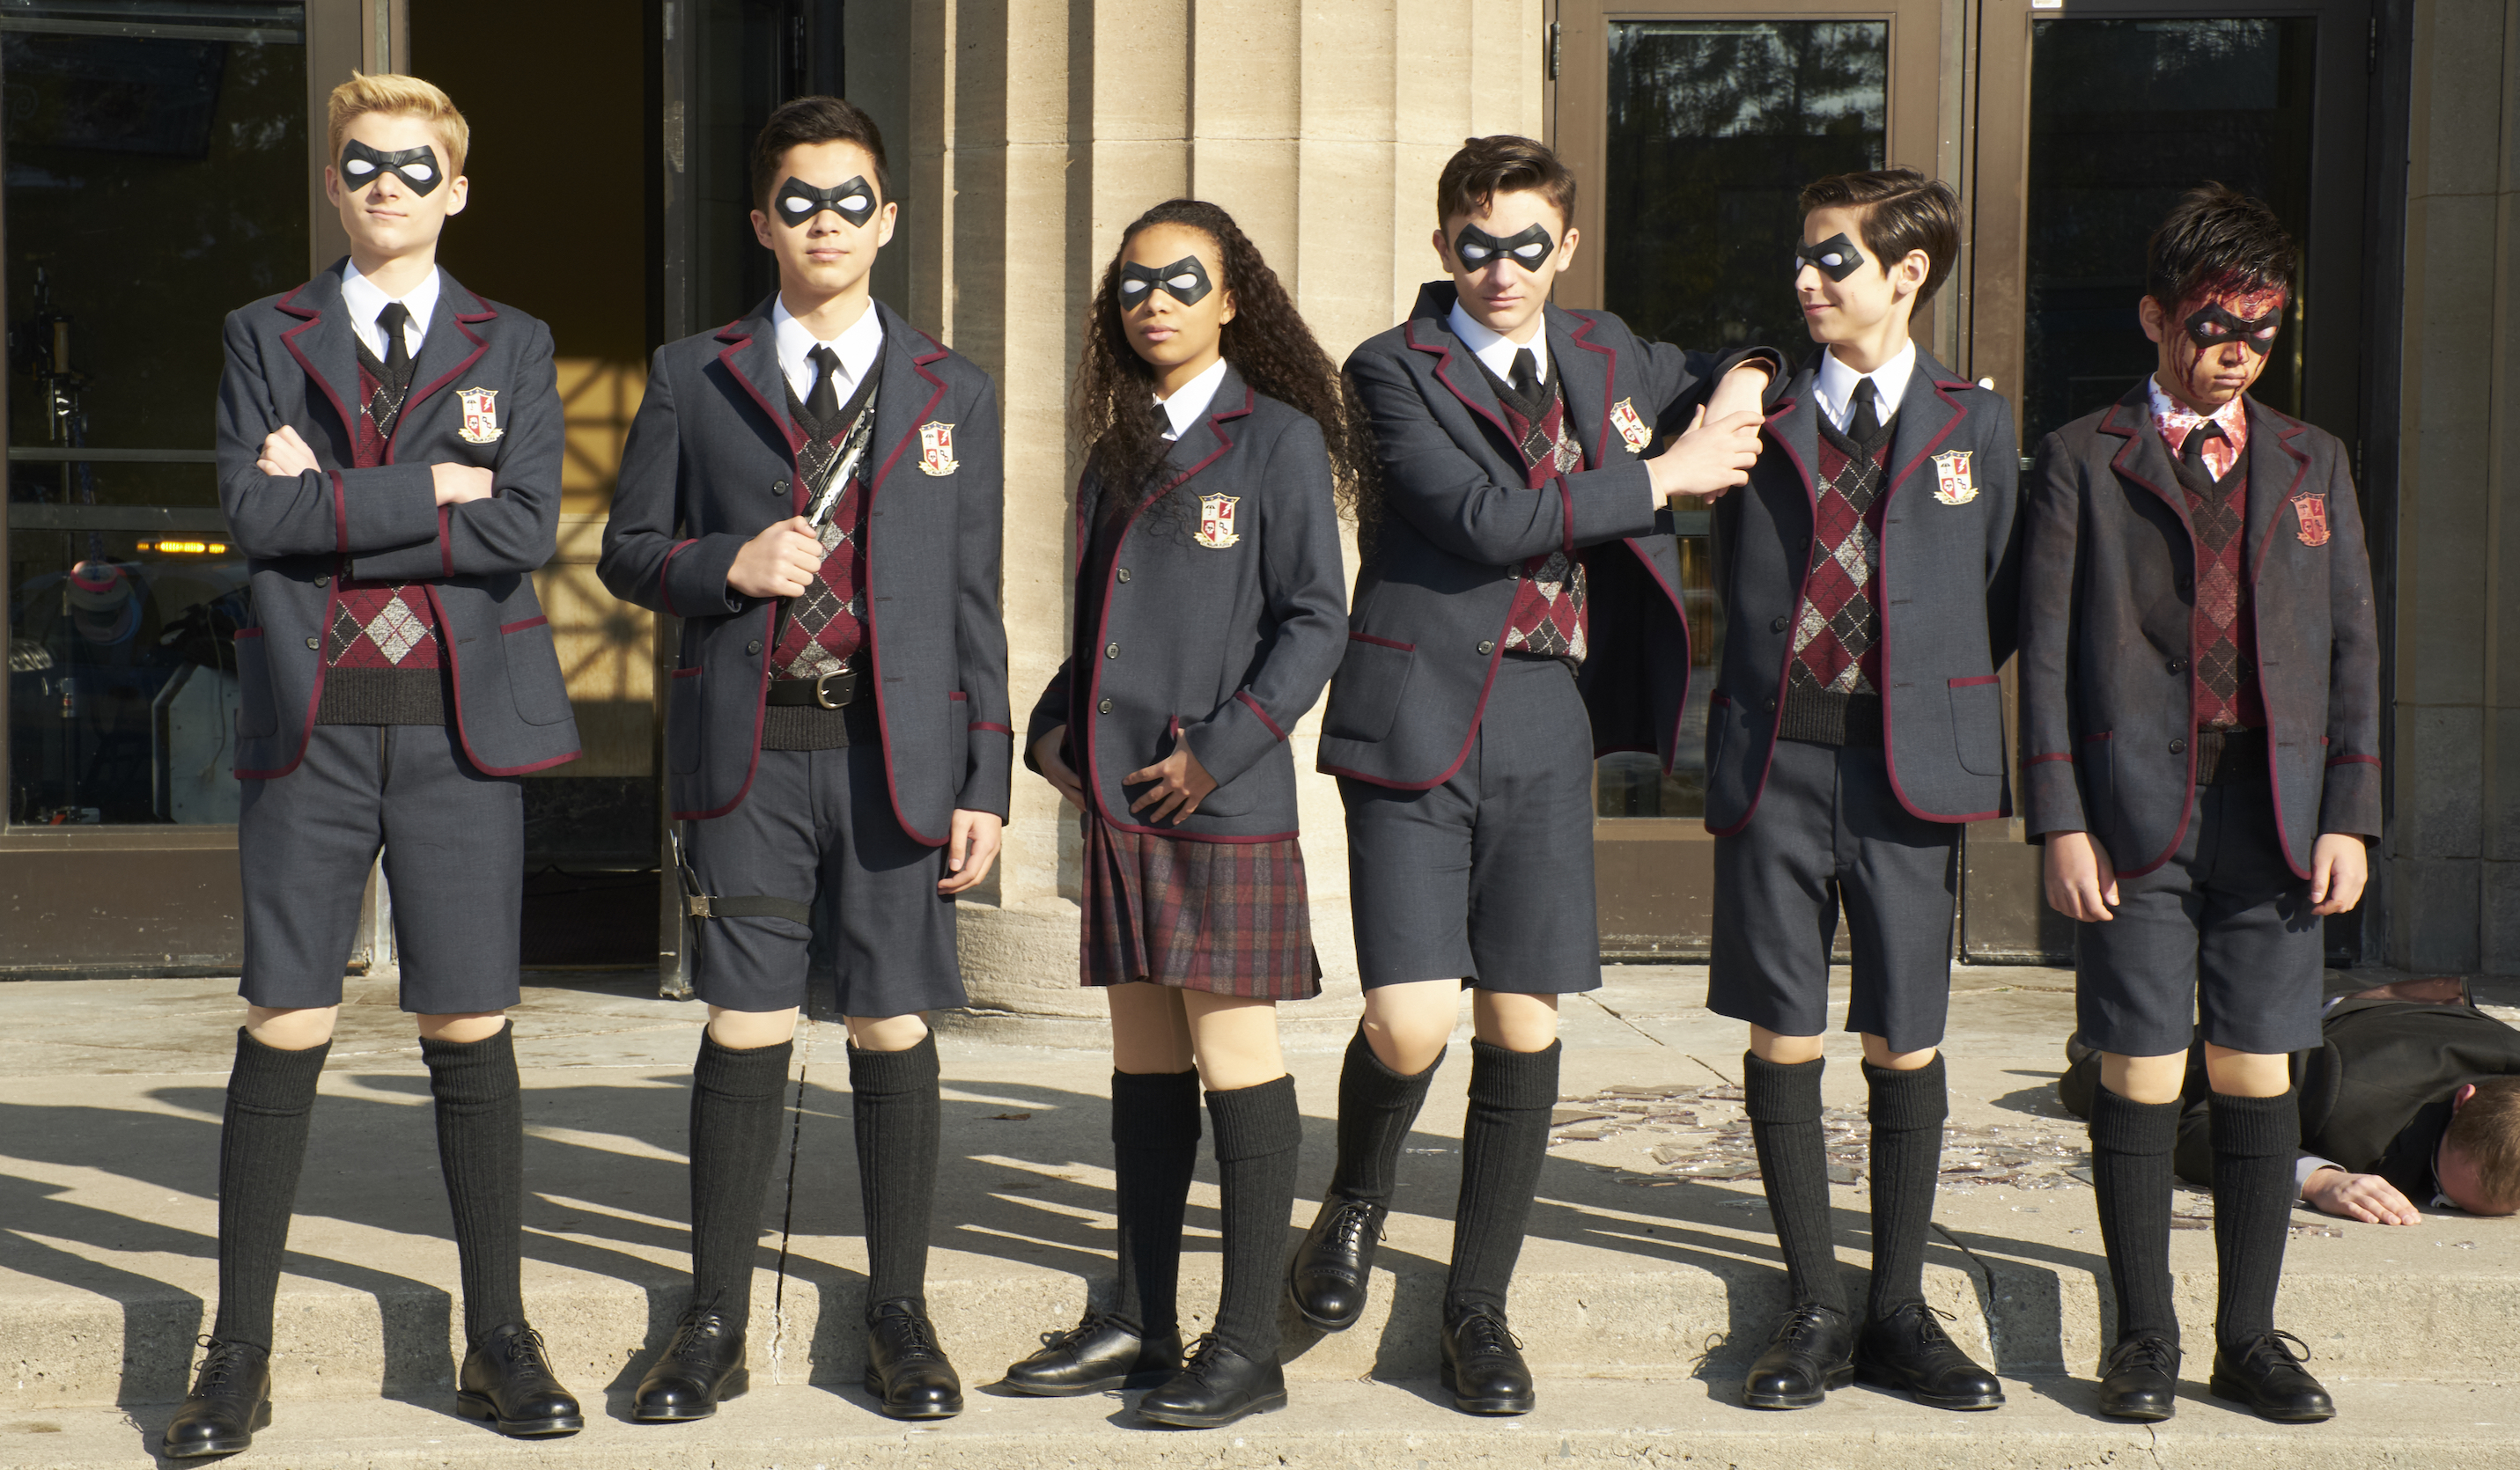 'The Umbrella Academy' será la nueva serie de superhéroes de Netflix